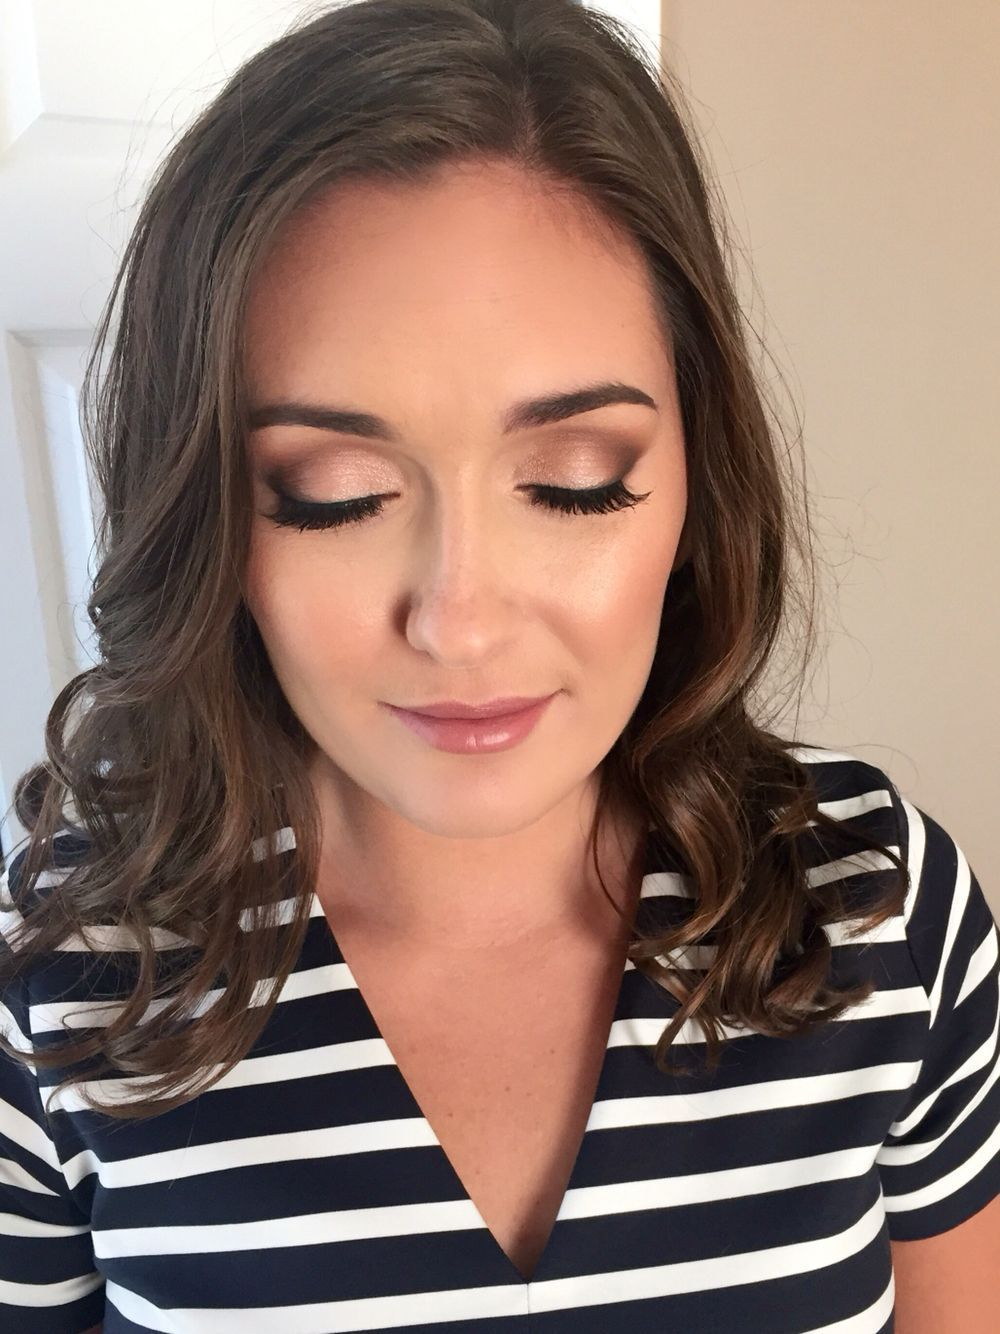 Natural Makeup Ideas That Will Leave You Looking Flawless